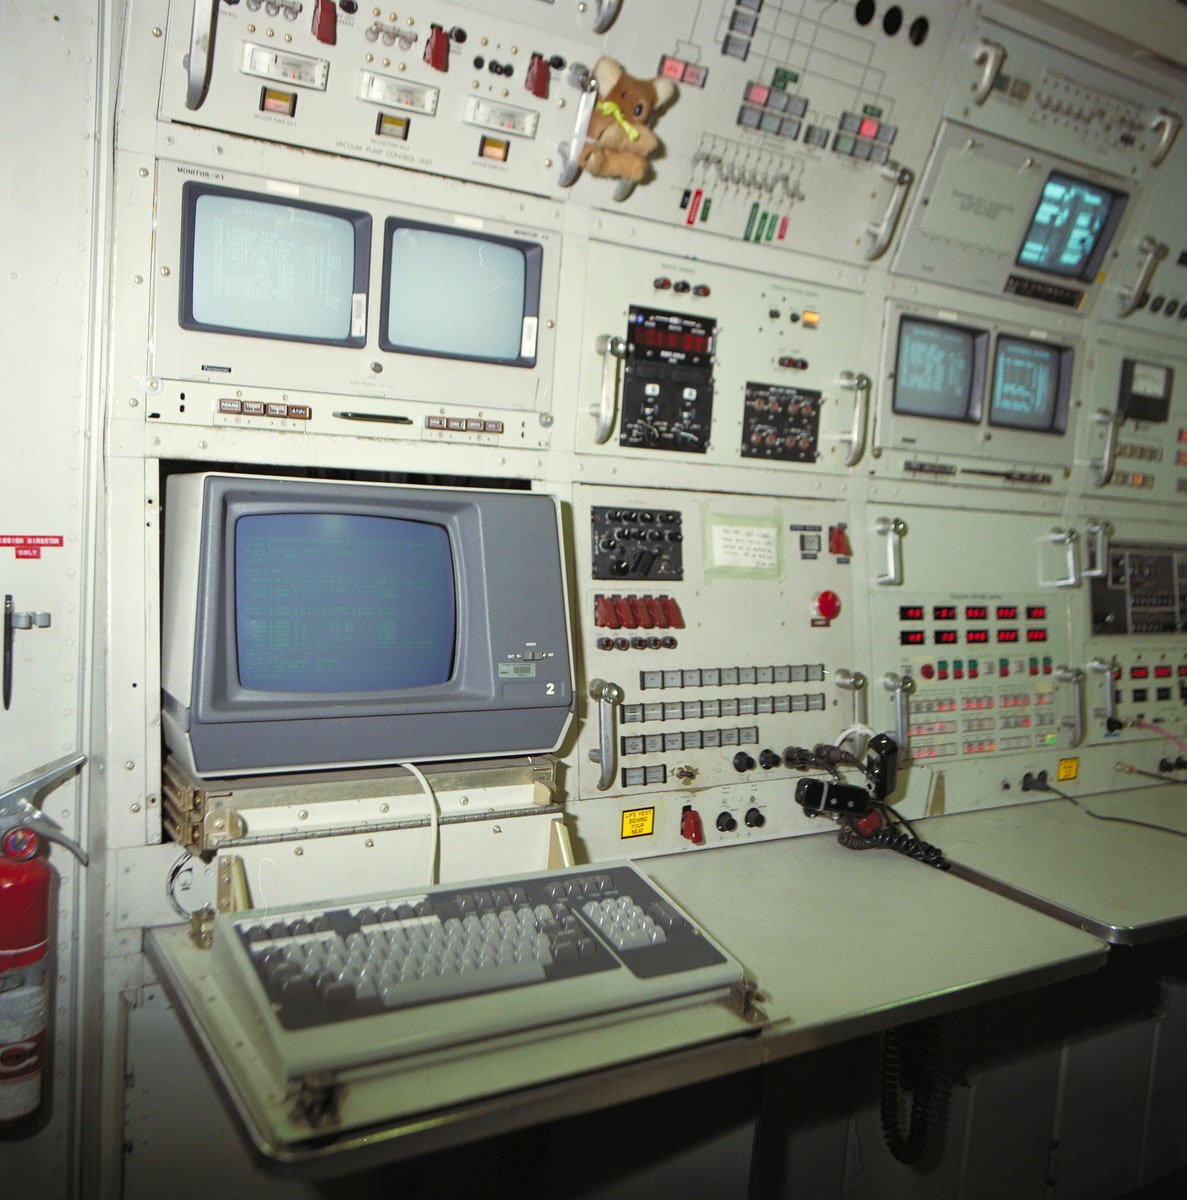 Cornell University, Infrared Interferometer mission directors console. Original from NASA. Digitally enhanced by rawpixel.